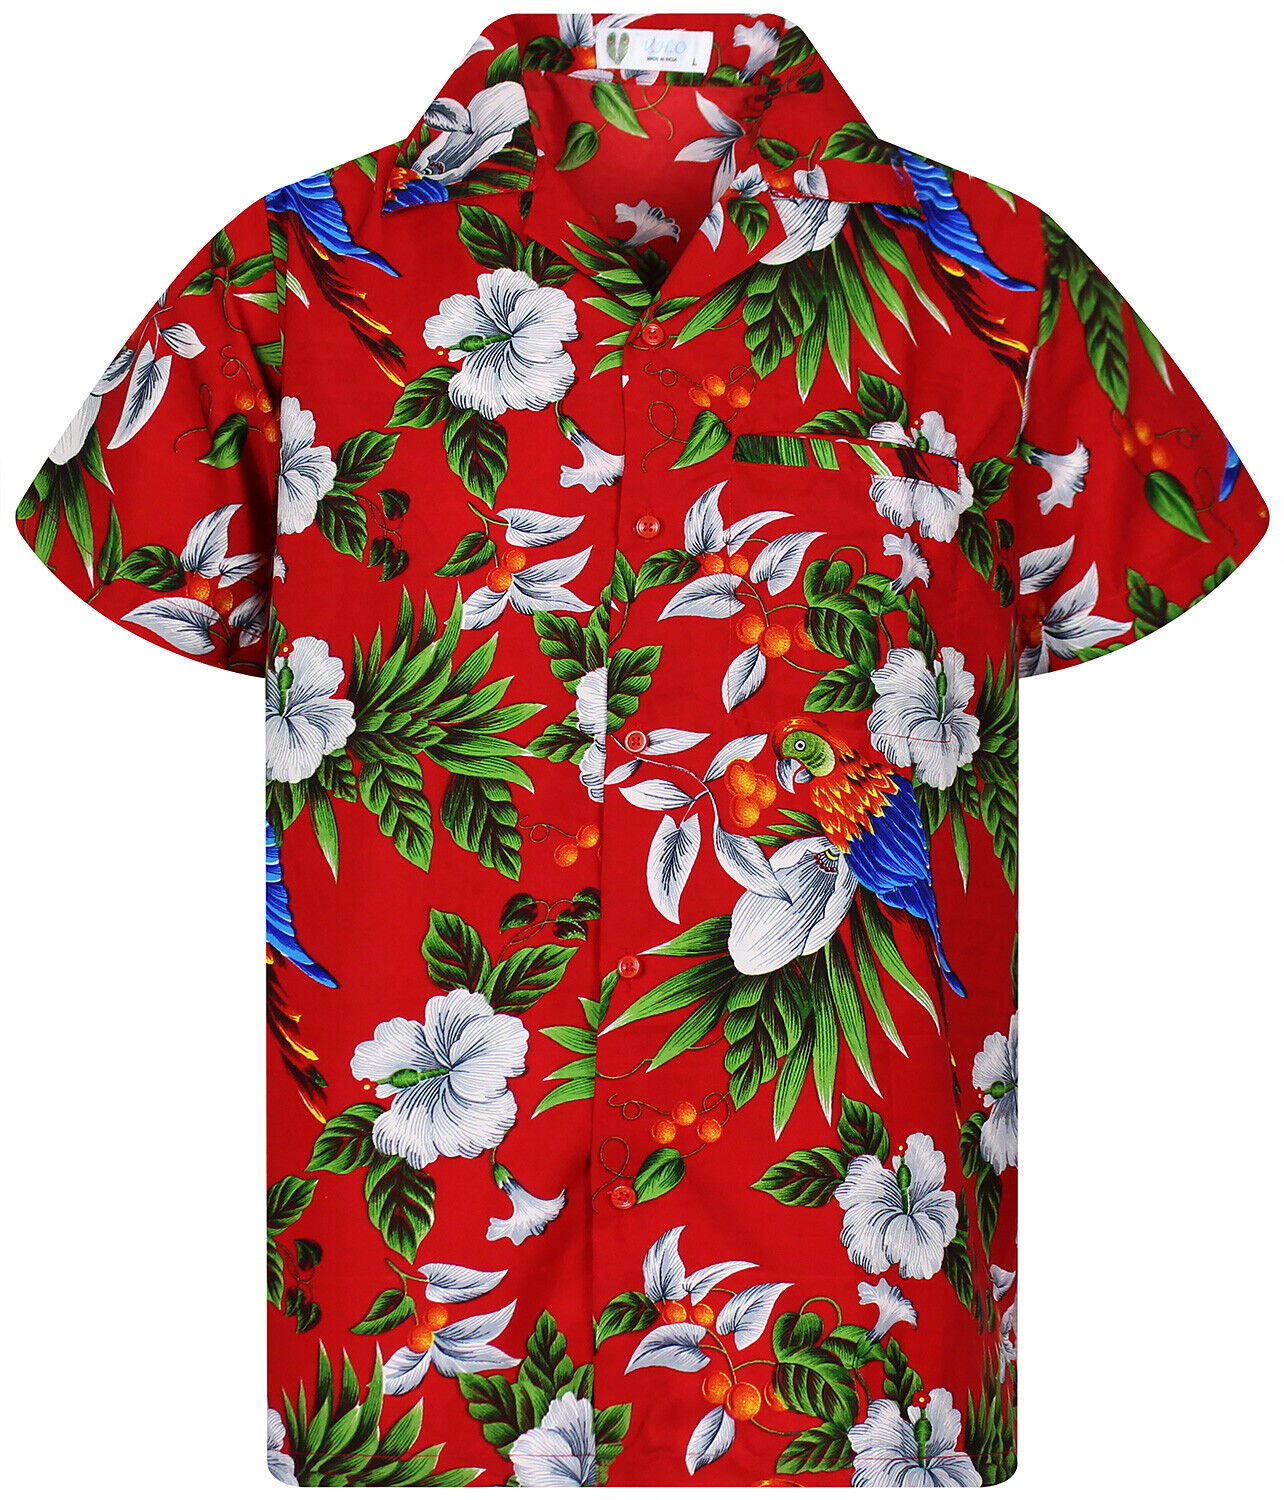 Funky Hawaiihemd Cherry Parrot Rot Hawaiian Shirt Hawaii